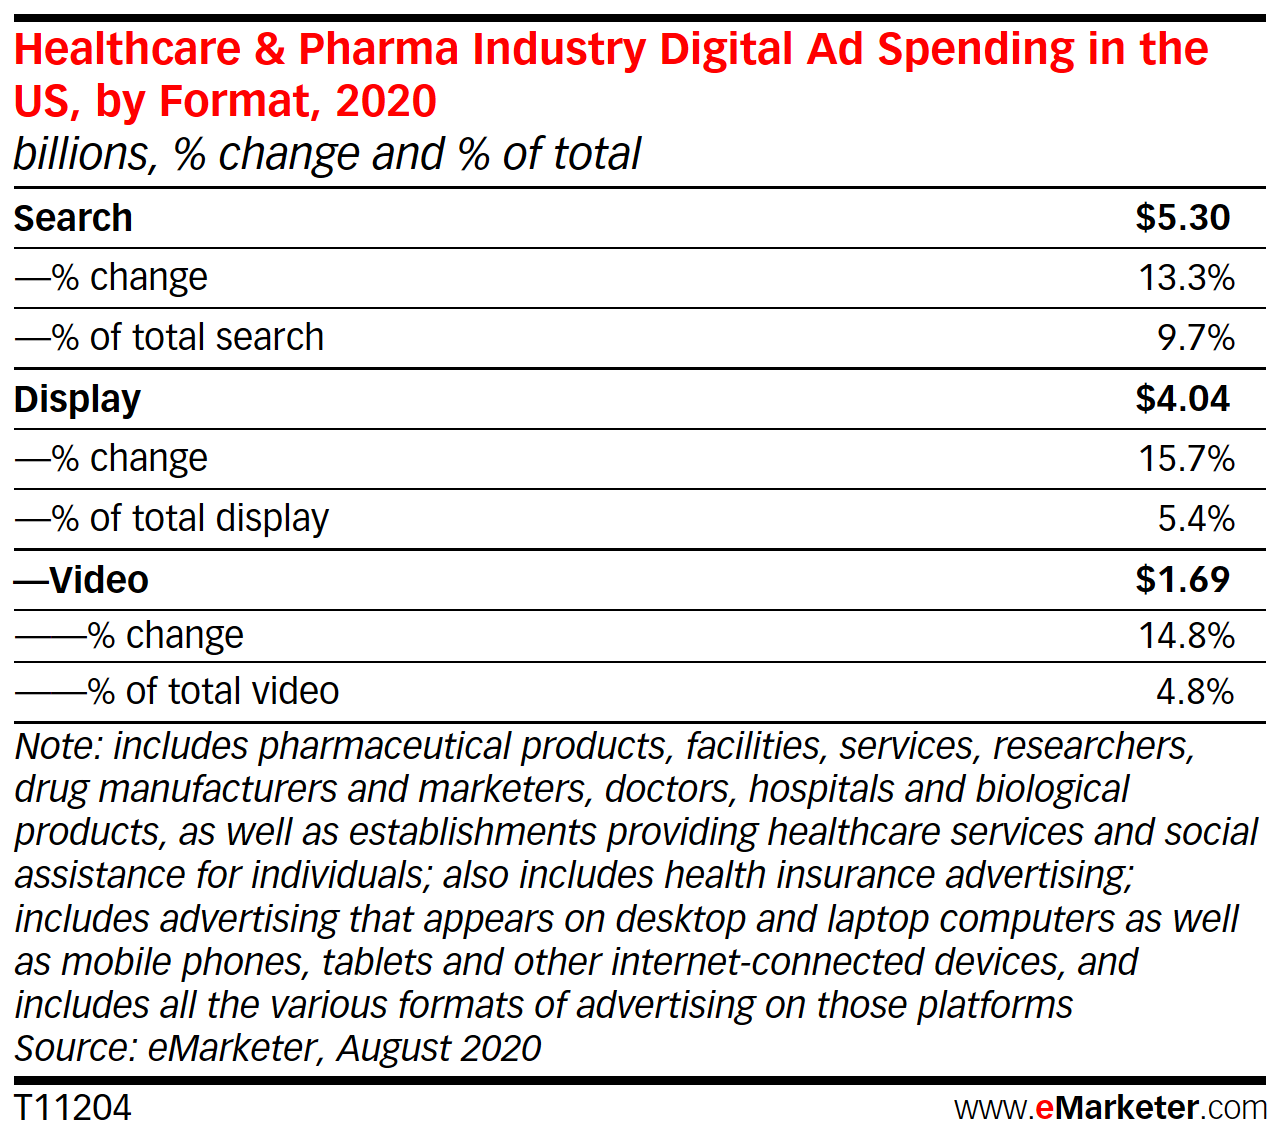 Healthcare & Pharma Industry Digital Ad Spending in the US, by Format, 2020